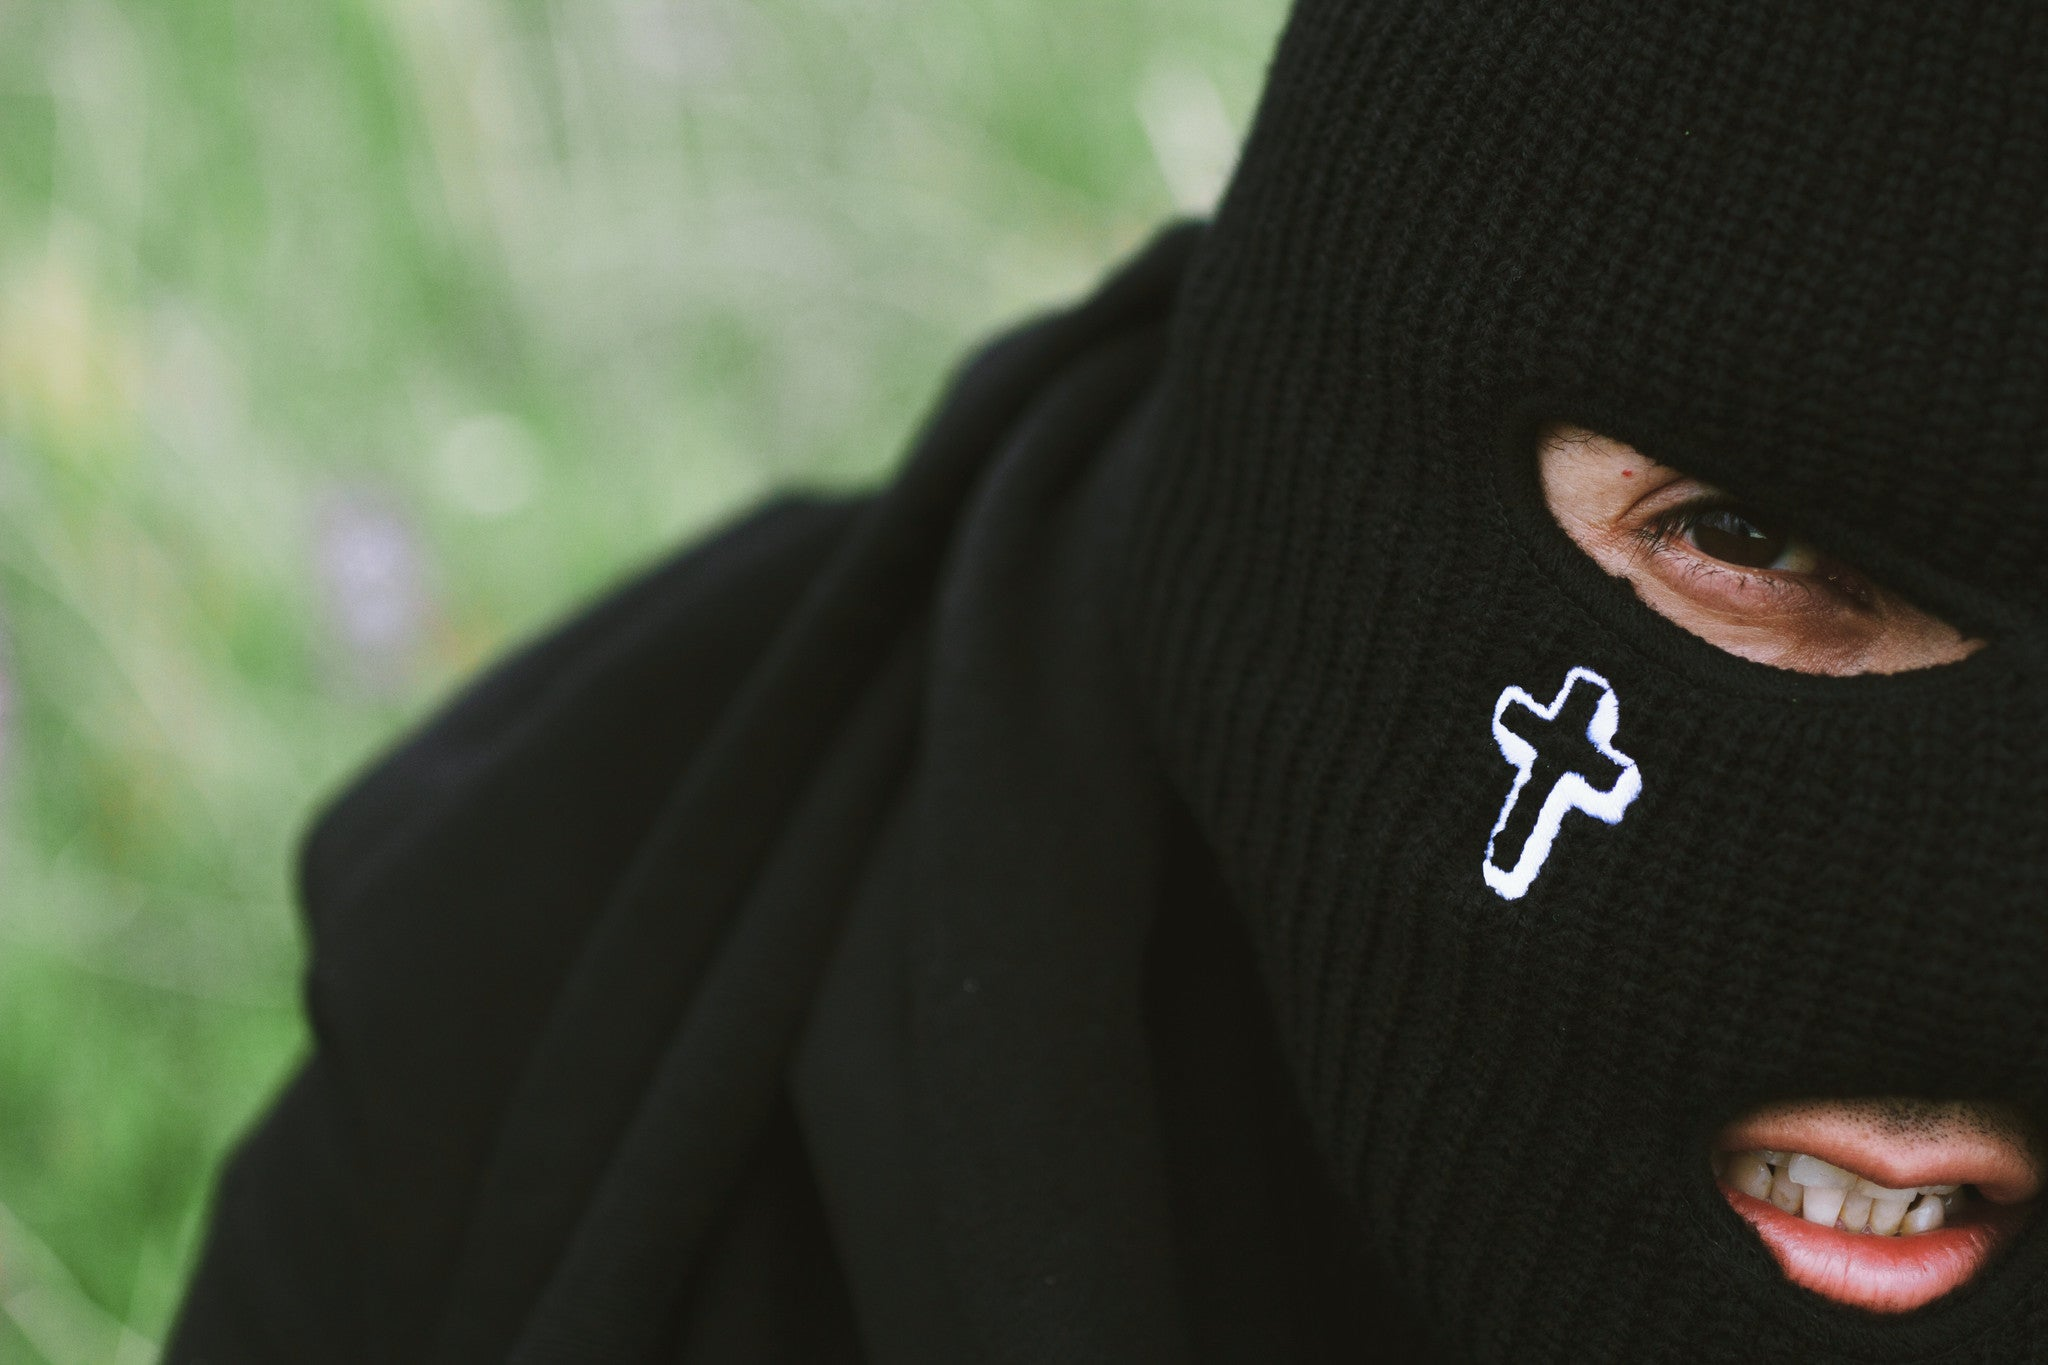 SKI MASK W/ TEXT LATIN CROSS